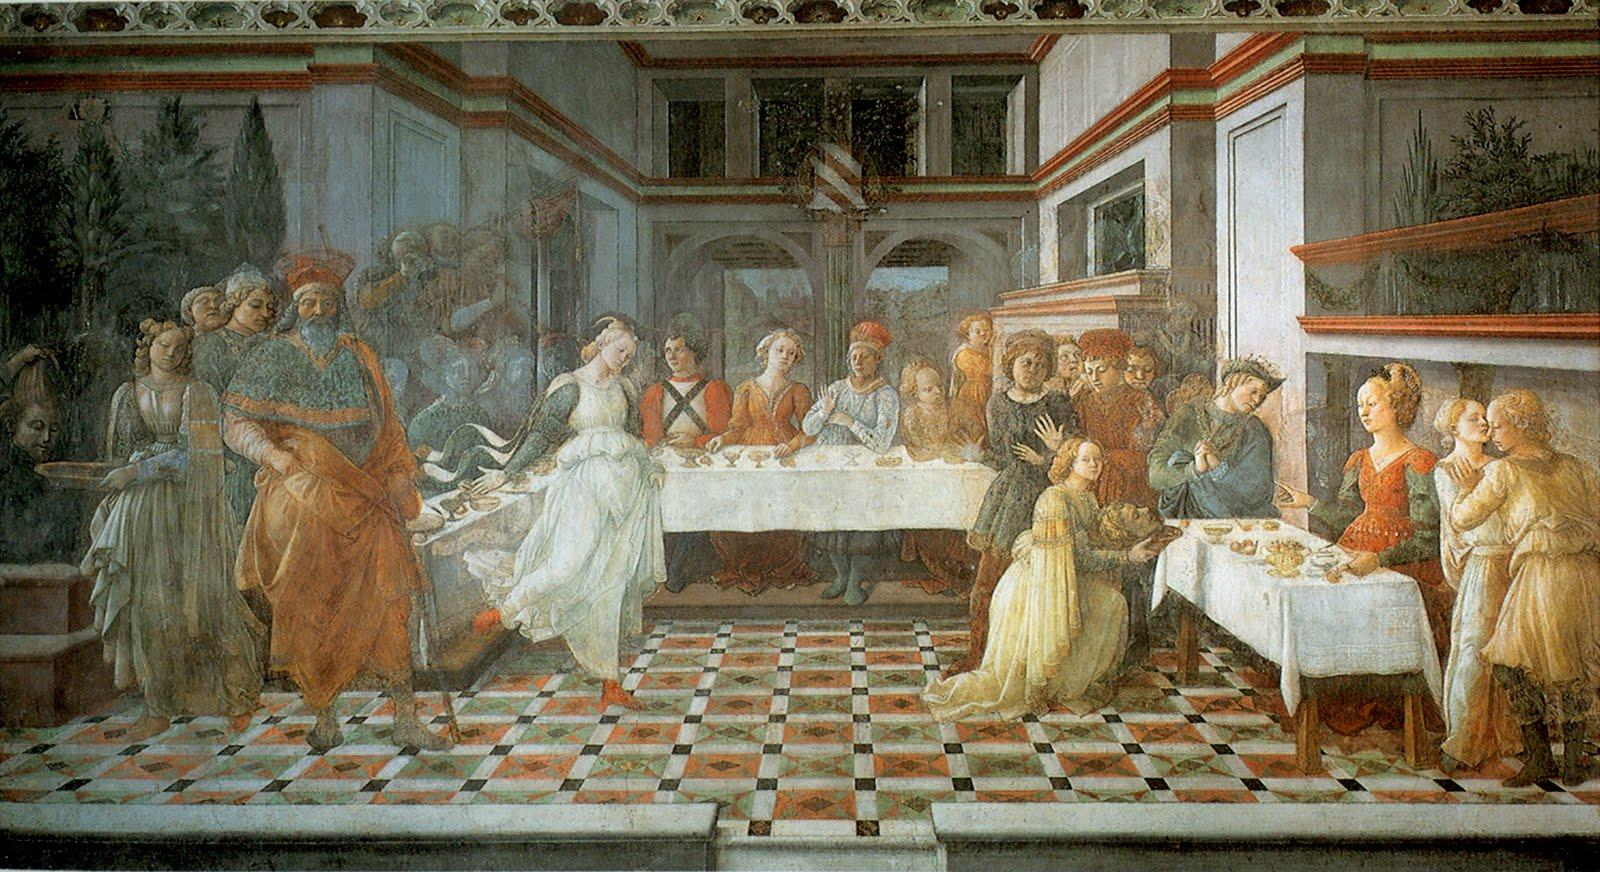 lippi-the-feast-of-herod.jpg